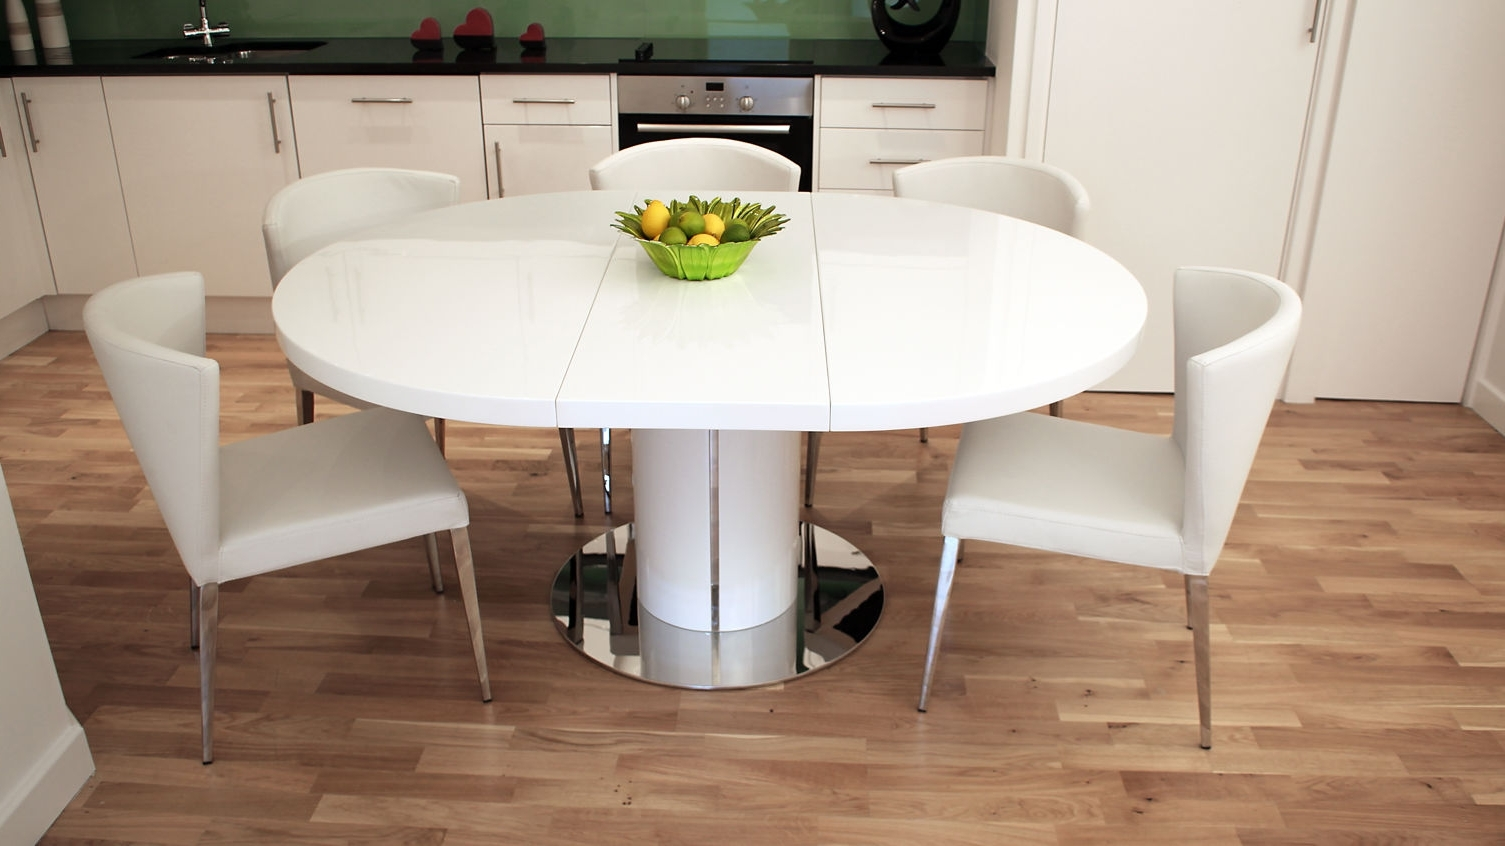 Best And Newest White Circle Dining Tables Regarding Diy Painting White Round Dining Table — The Home Redesign (View 3 of 25)